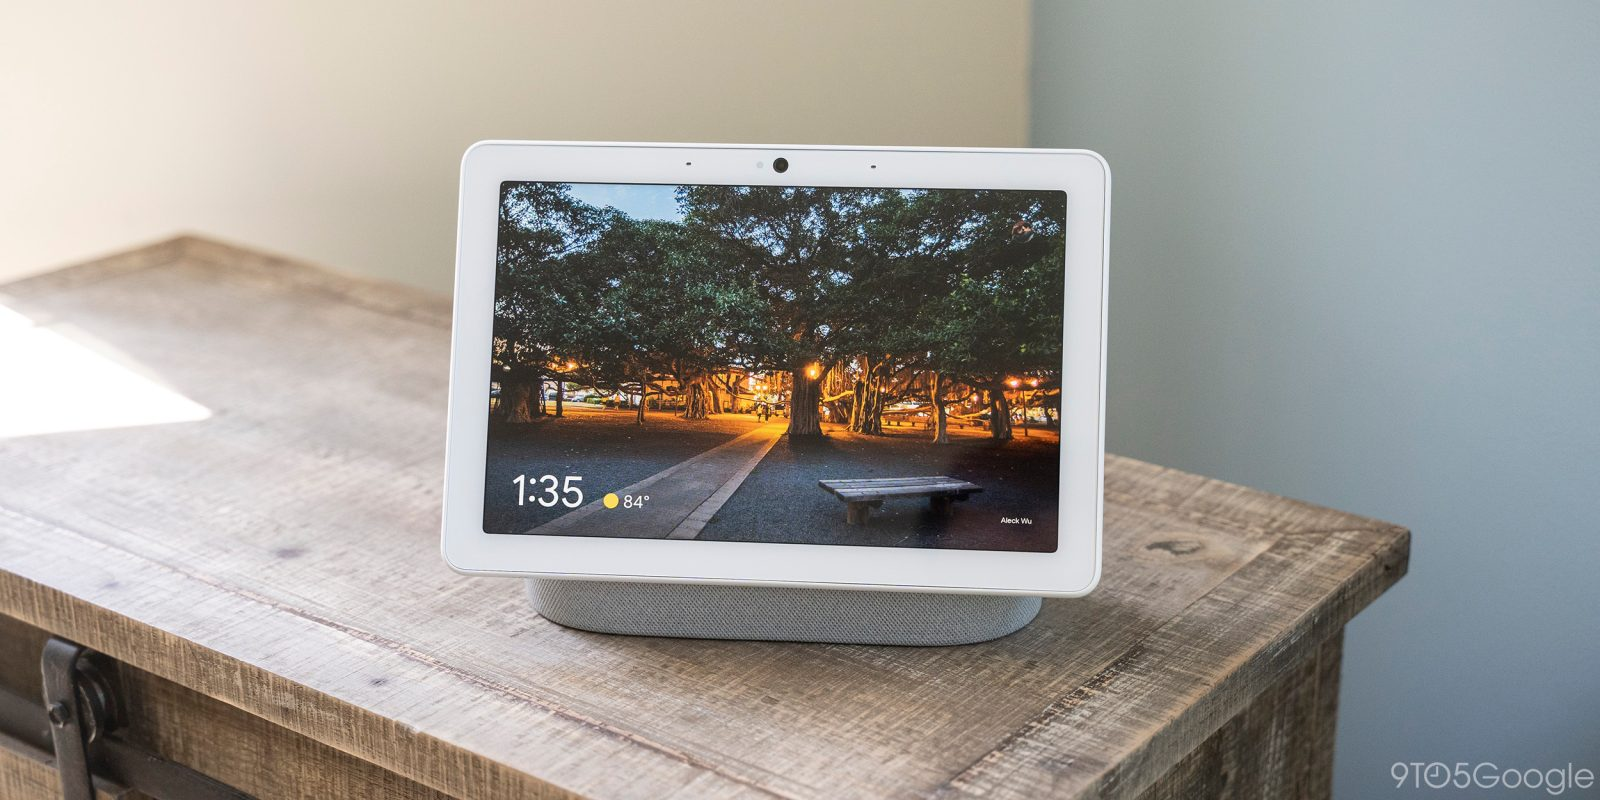 How to turn off or cover the camera on Google's Nest Hub Max